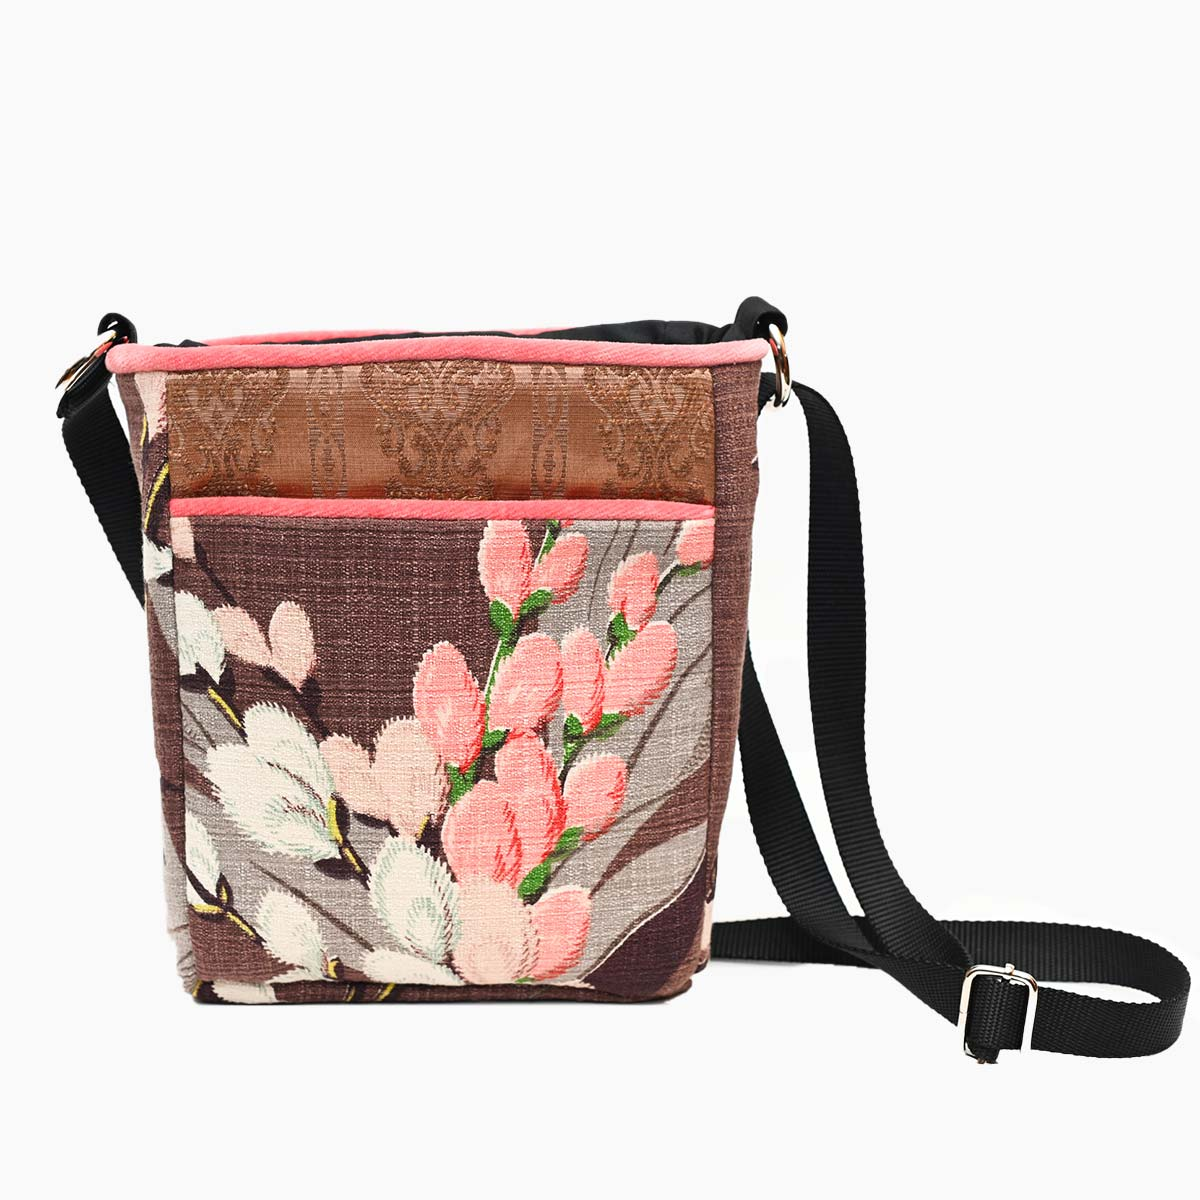 crossbody bag pussywillows on caramel